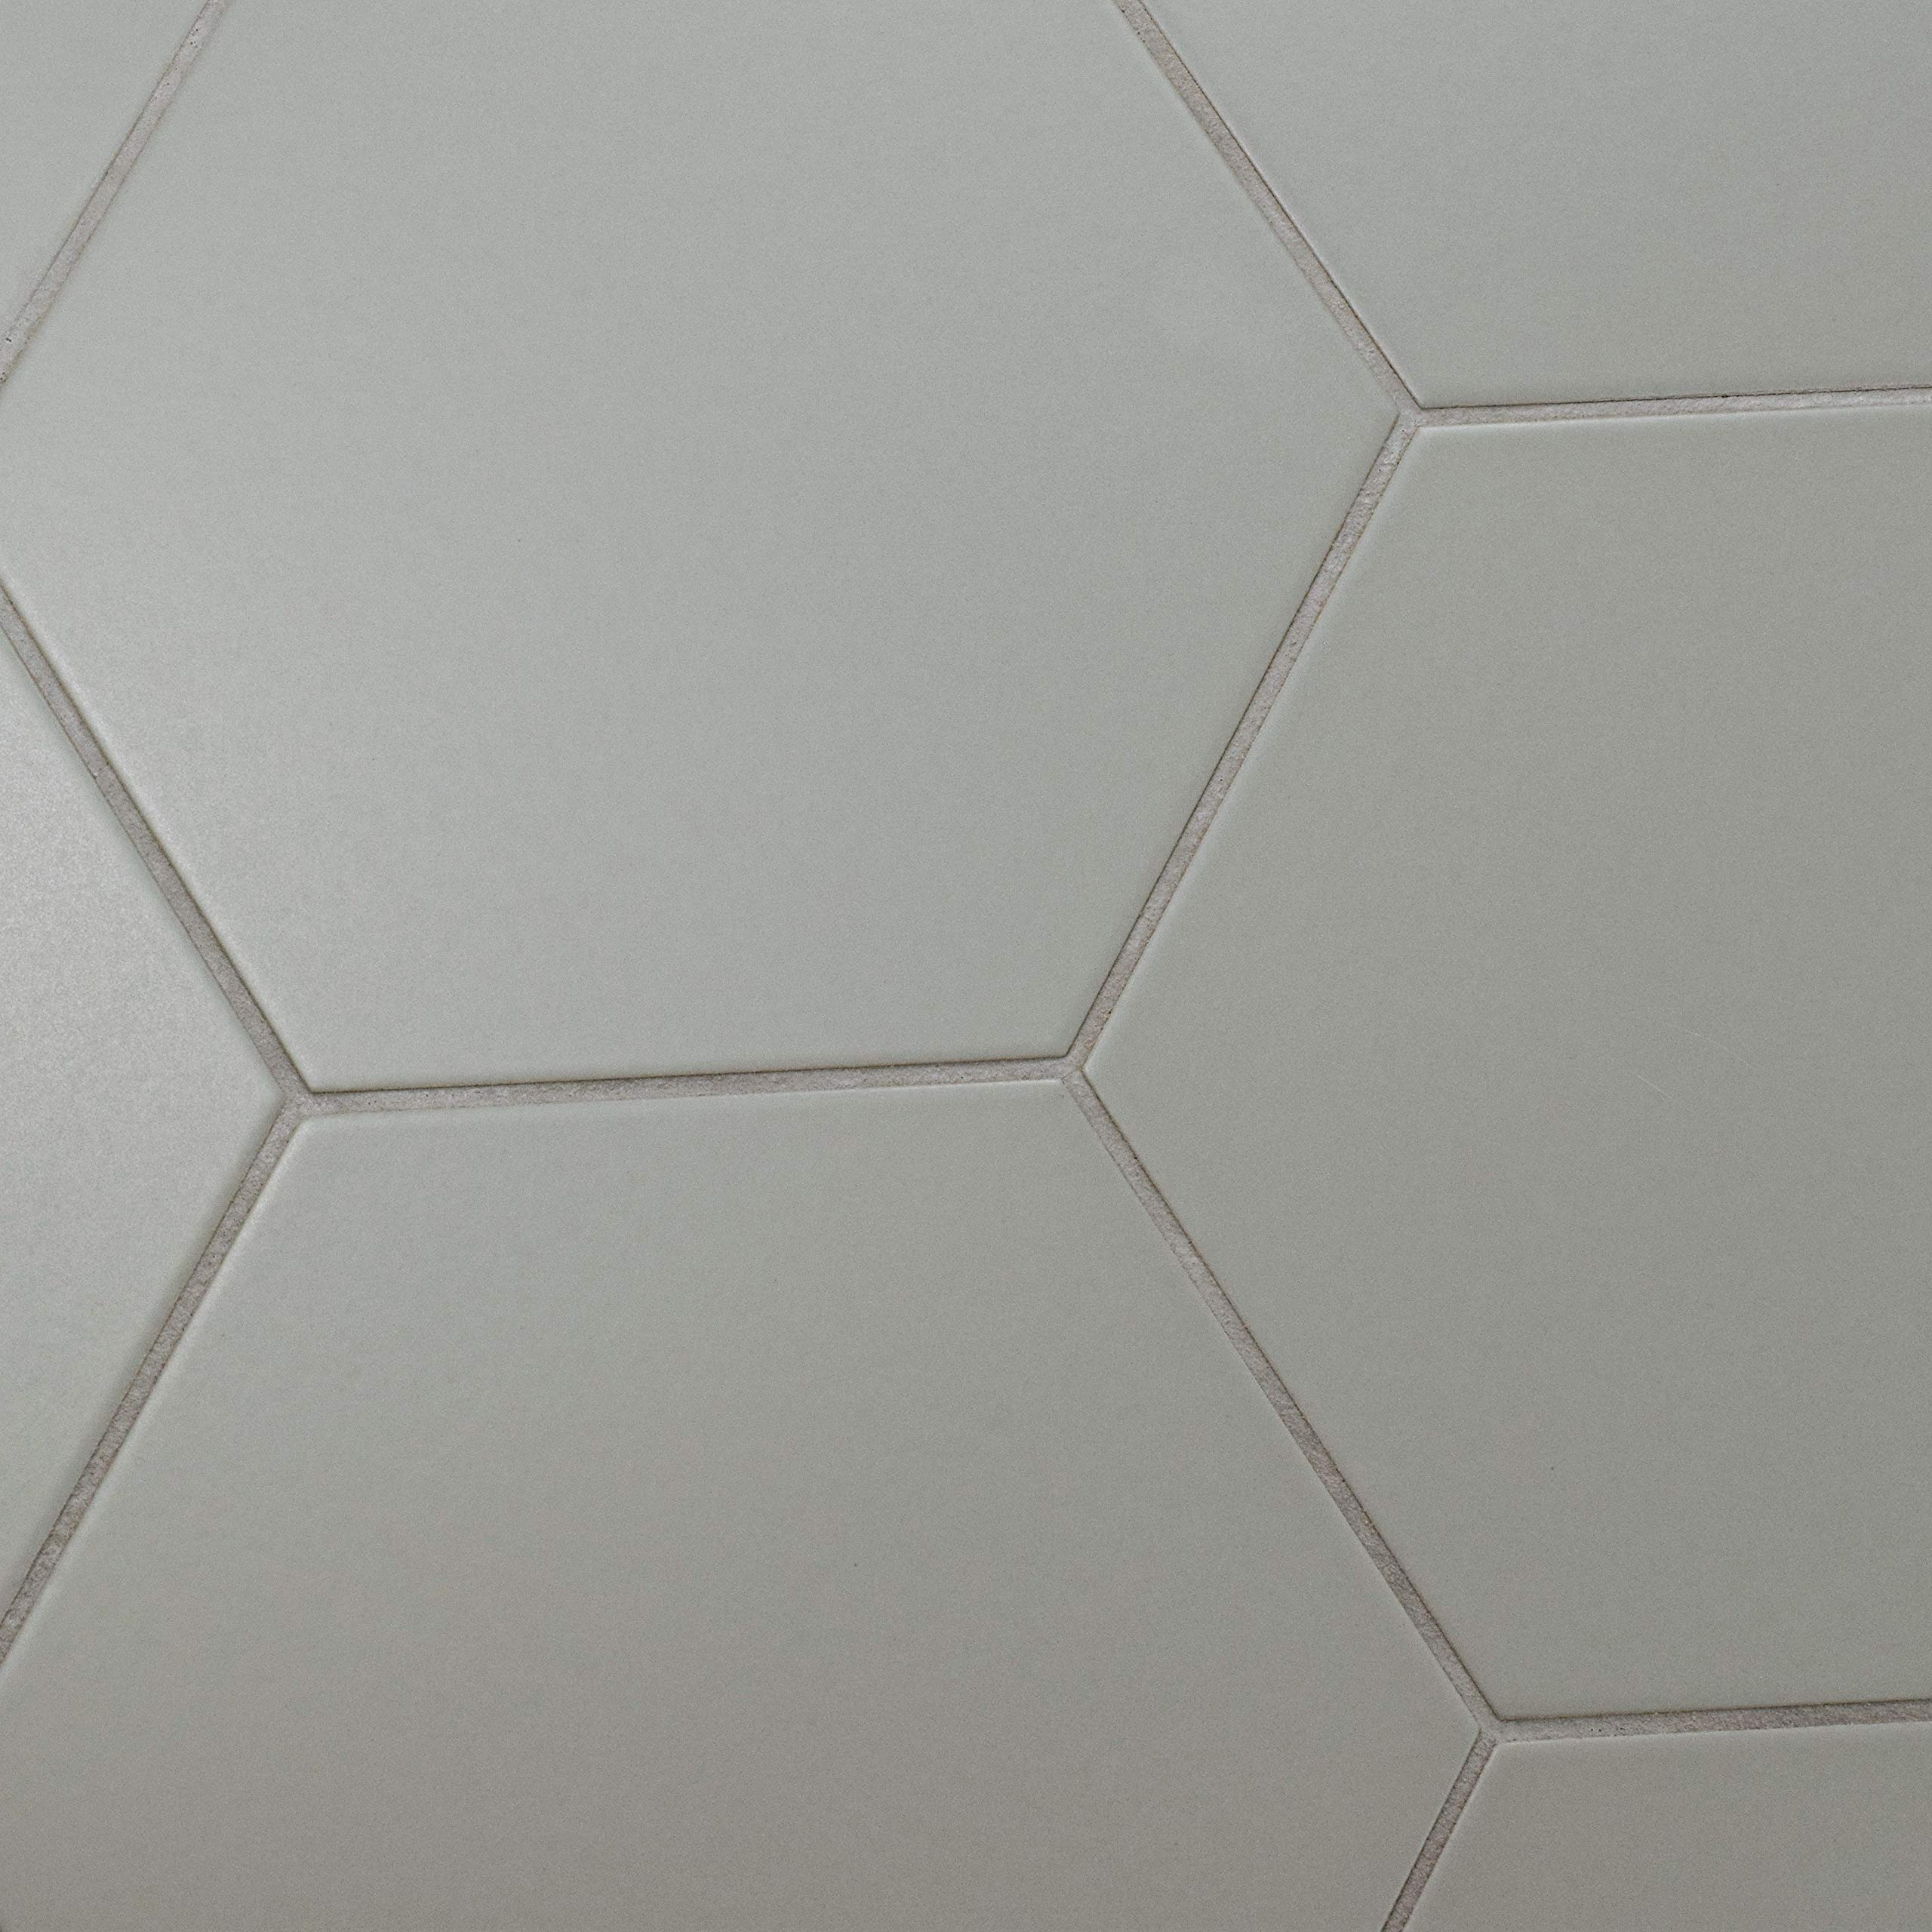 SomerTile FCD10STX Abrique Hex Porcelain Floor and Wall, 8.63'' x 9.88'', Silver Tile 8.625'' x 9.875'' 25 Piece by SOMERTILE (Image #4)